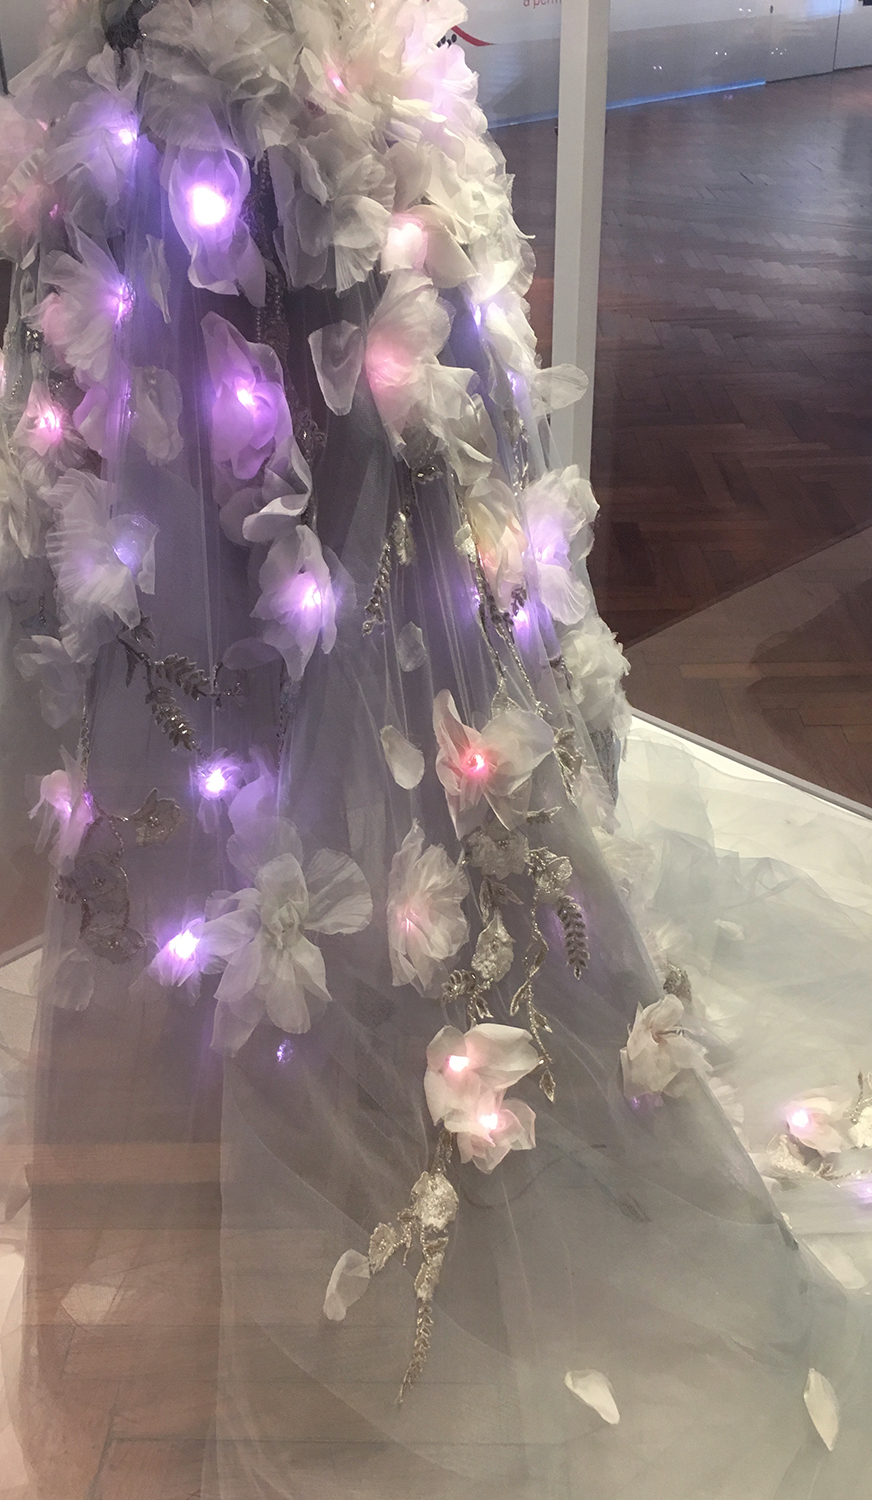 Detail of the beautiful handwork and embedded LED lights on the dress.